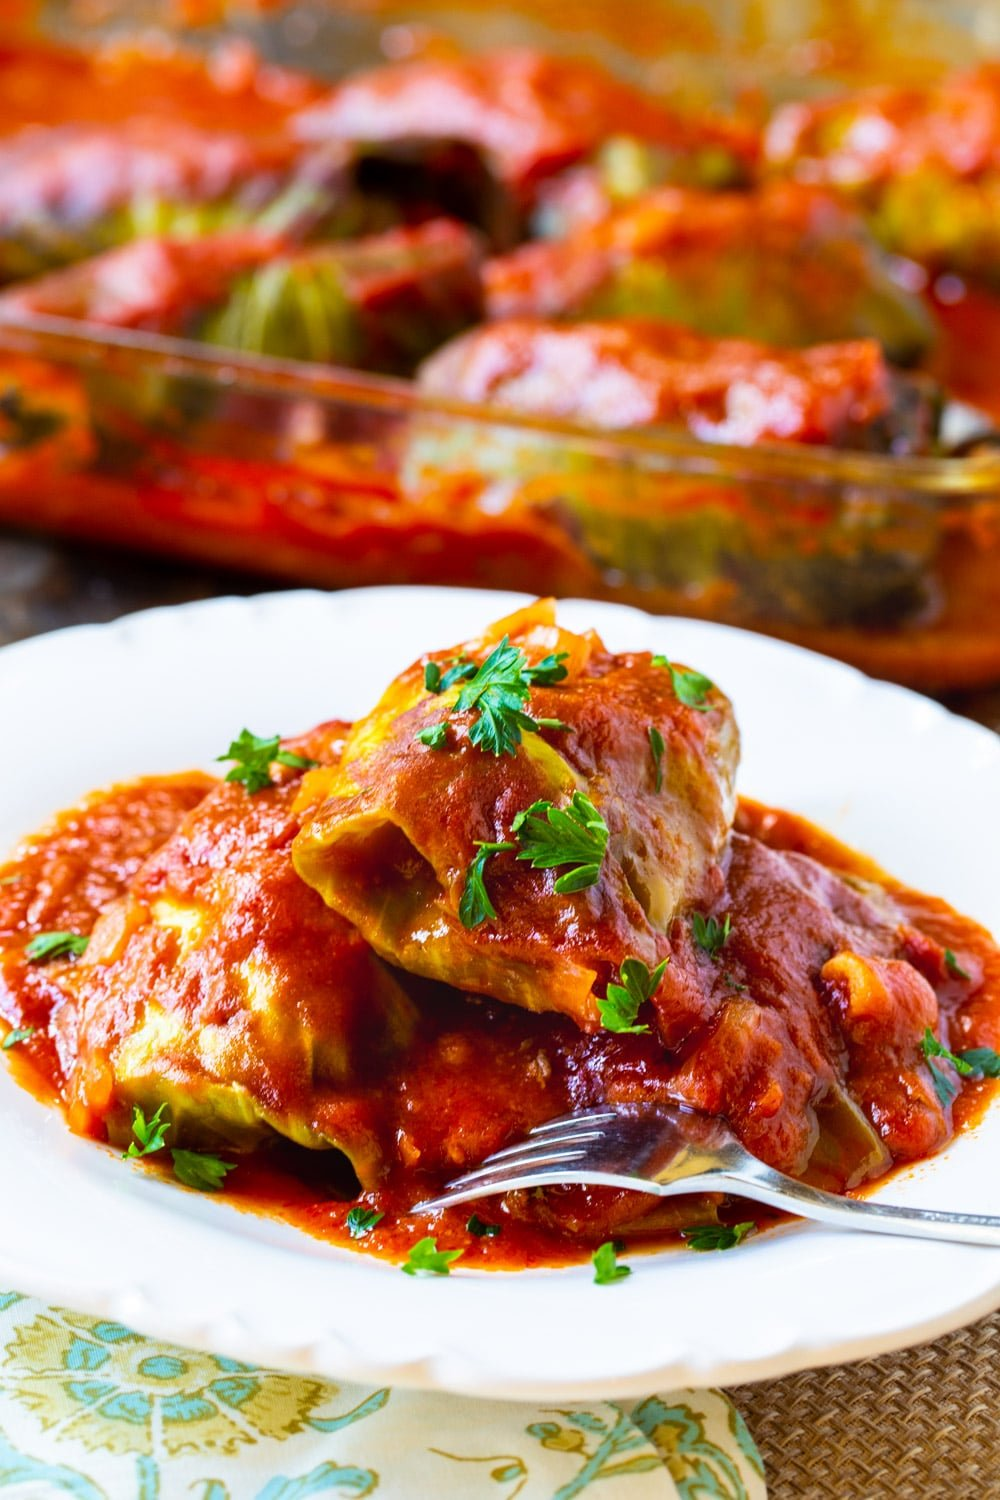 Cabbage Rolls on a plate with fork.